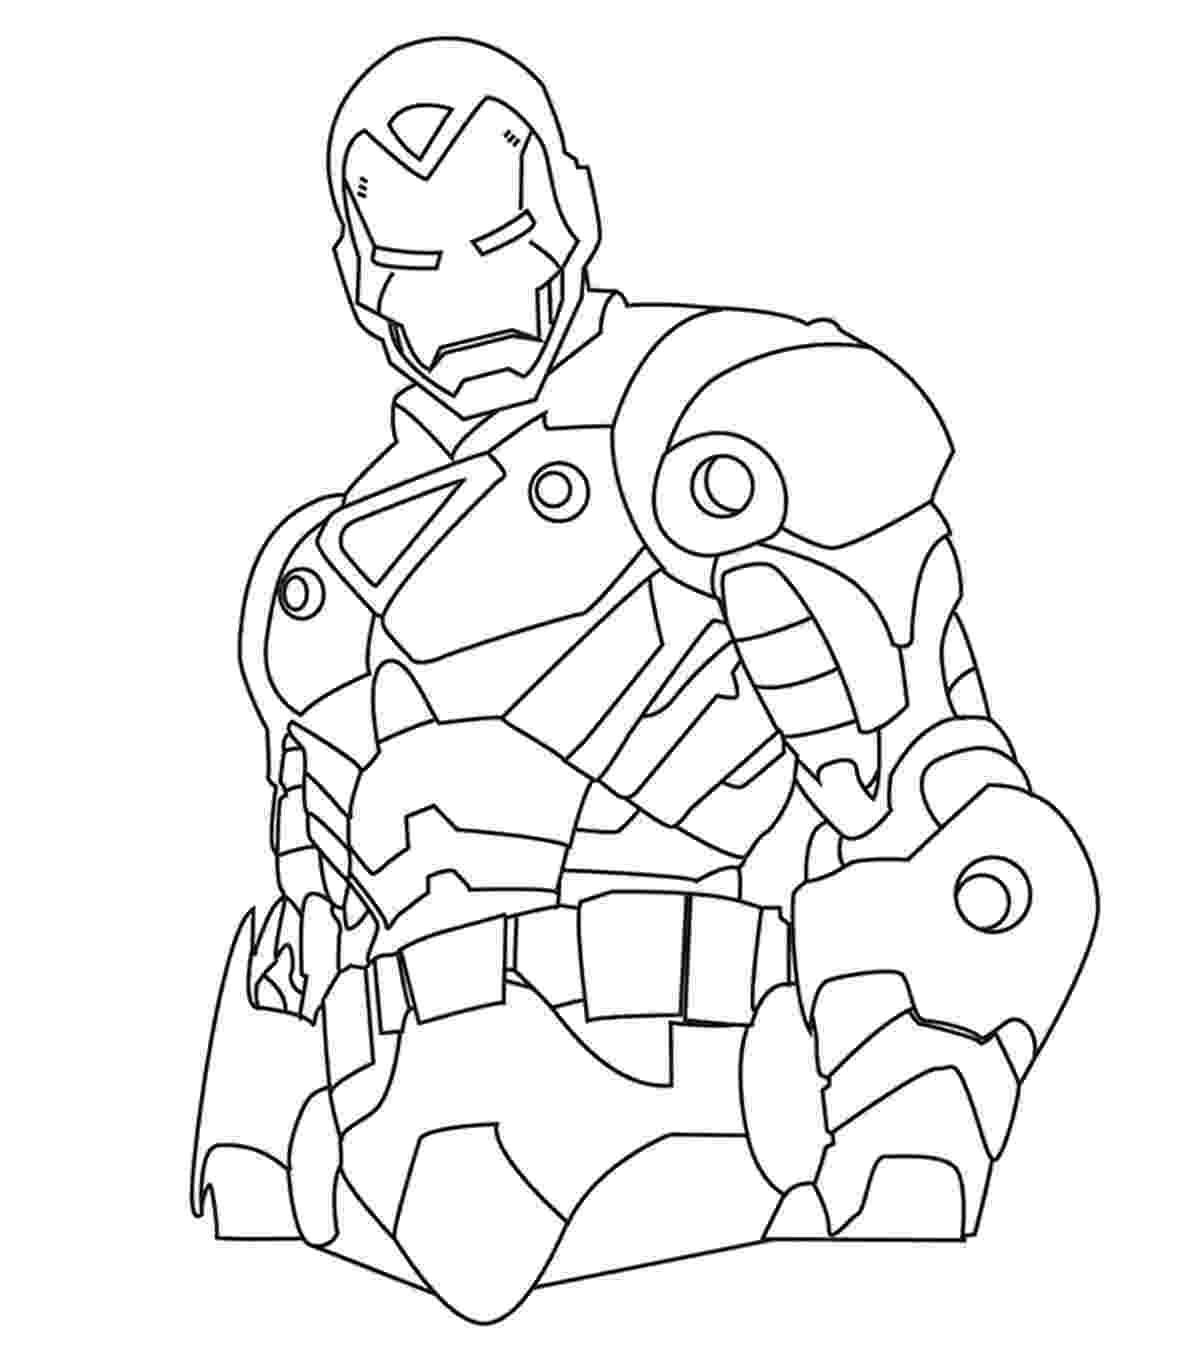 iron man coloring pages iron man coloring pages ironman mark06 iron man coloring man iron coloring pages